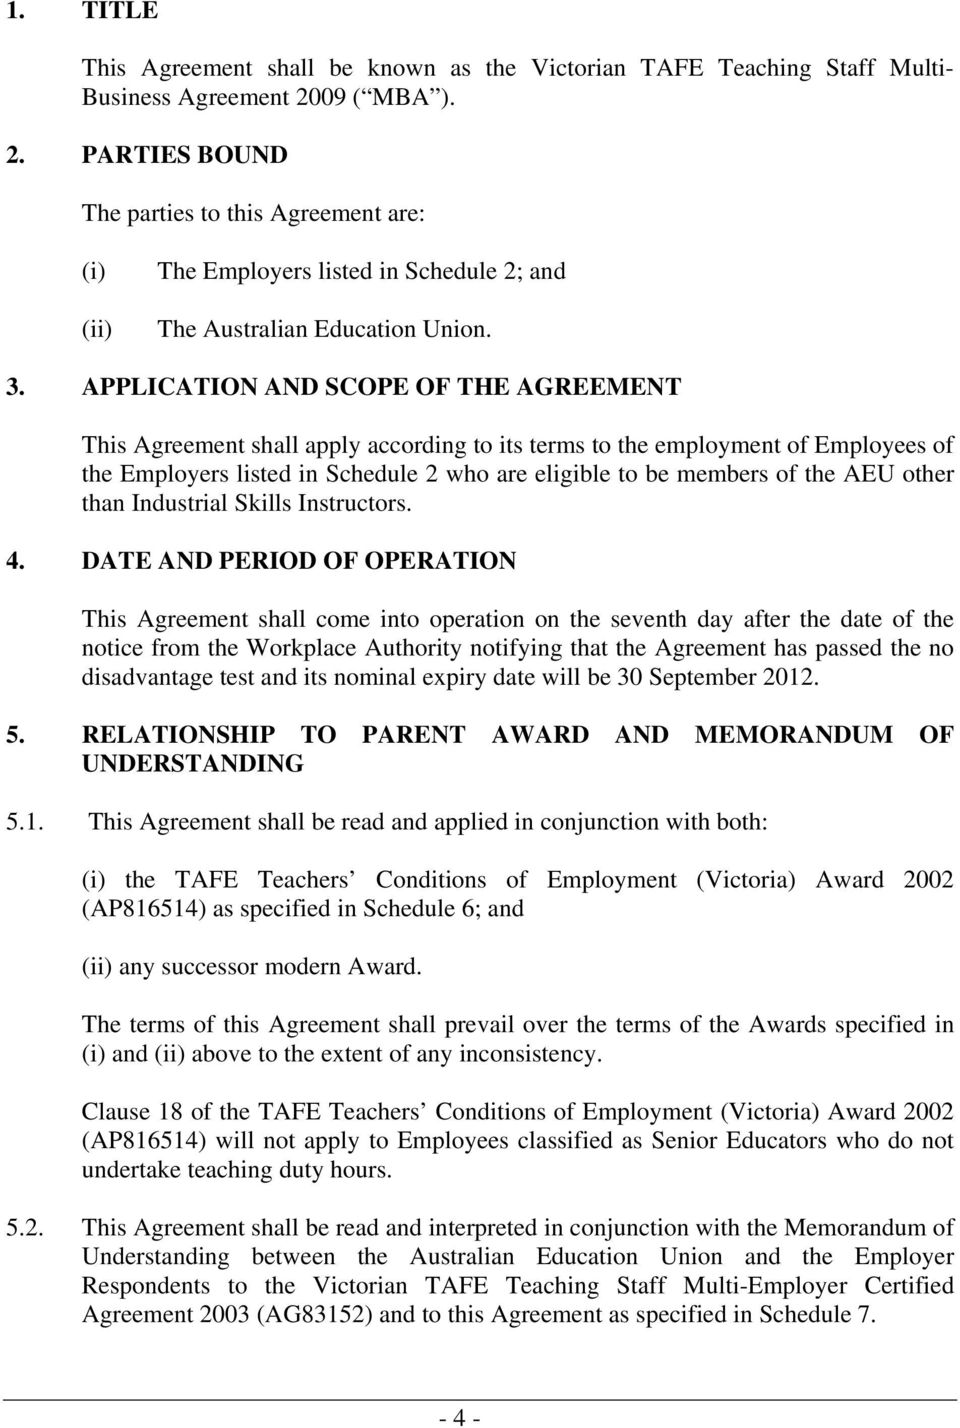 APPLICATION AND SCOPE OF THE AGREEMENT This Agreement shall apply according to its terms to the employment of Employees of the Employers listed in Schedule 2 who are eligible to be members of the AEU